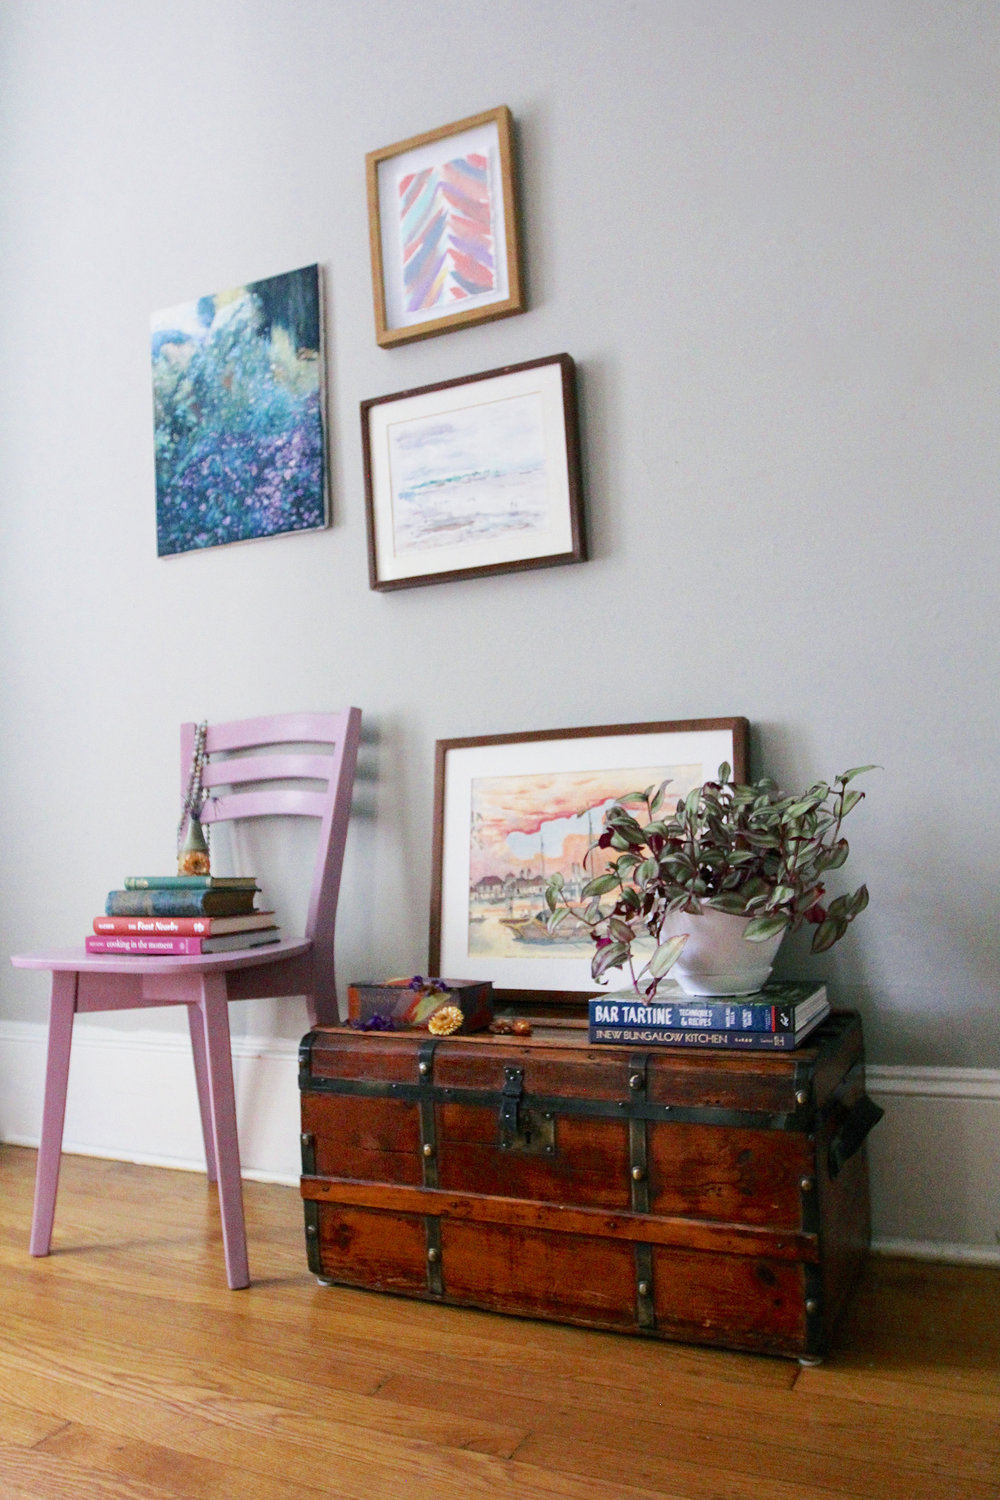 jo-torrijos-a-simpler-design-atlanta-painted-furniture-lilac-chair-annie-sloan-henrietta-5.jpg